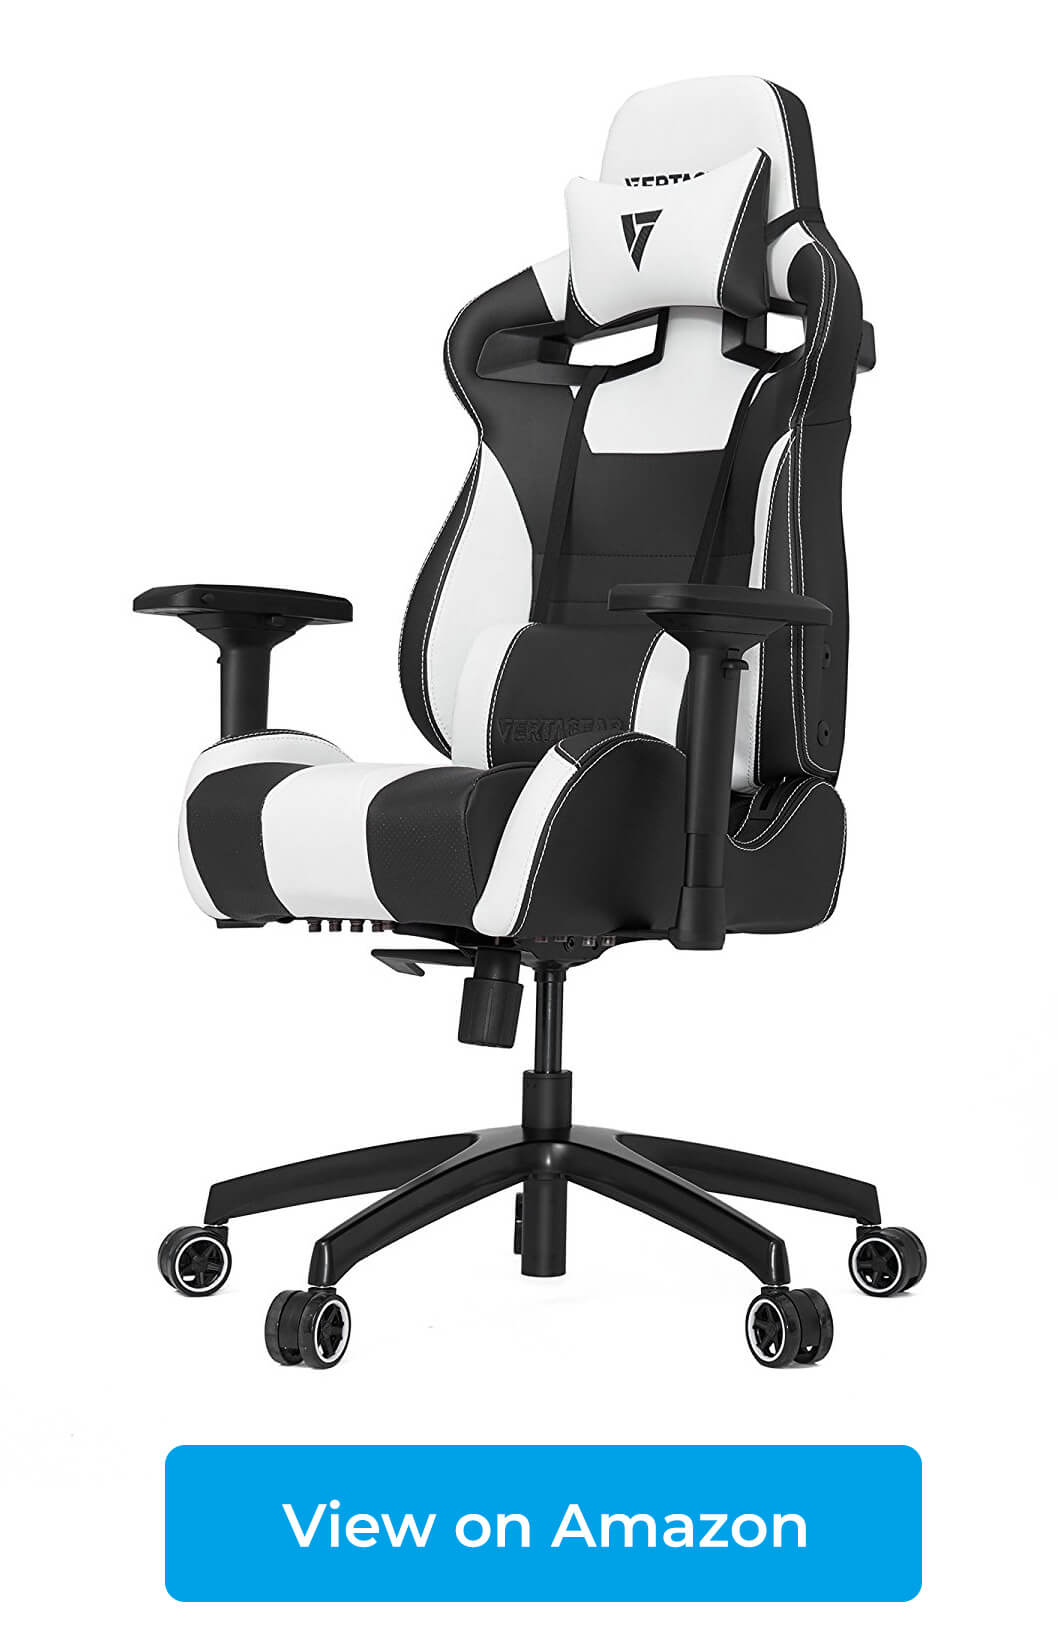 Vertagear SL4000 is one of the Best Herman Miller Sayl Alternative